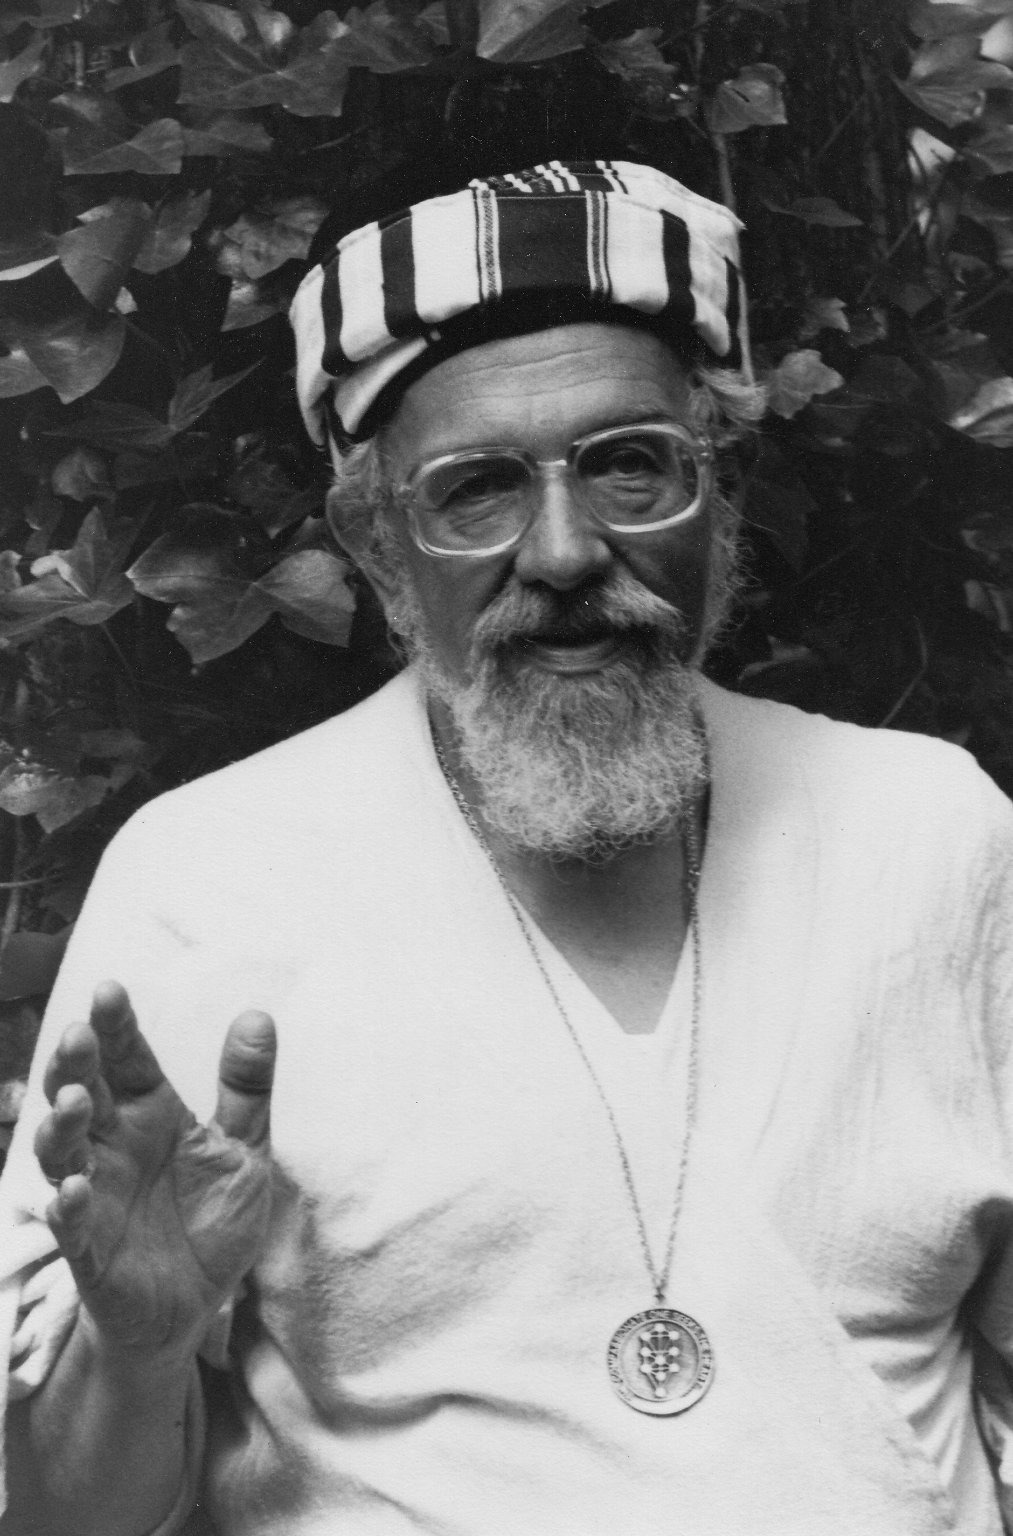 Rabbi Zalman Schachter-Shalomi in stiped turban with B'nai Or medallion, ca. 1980s.